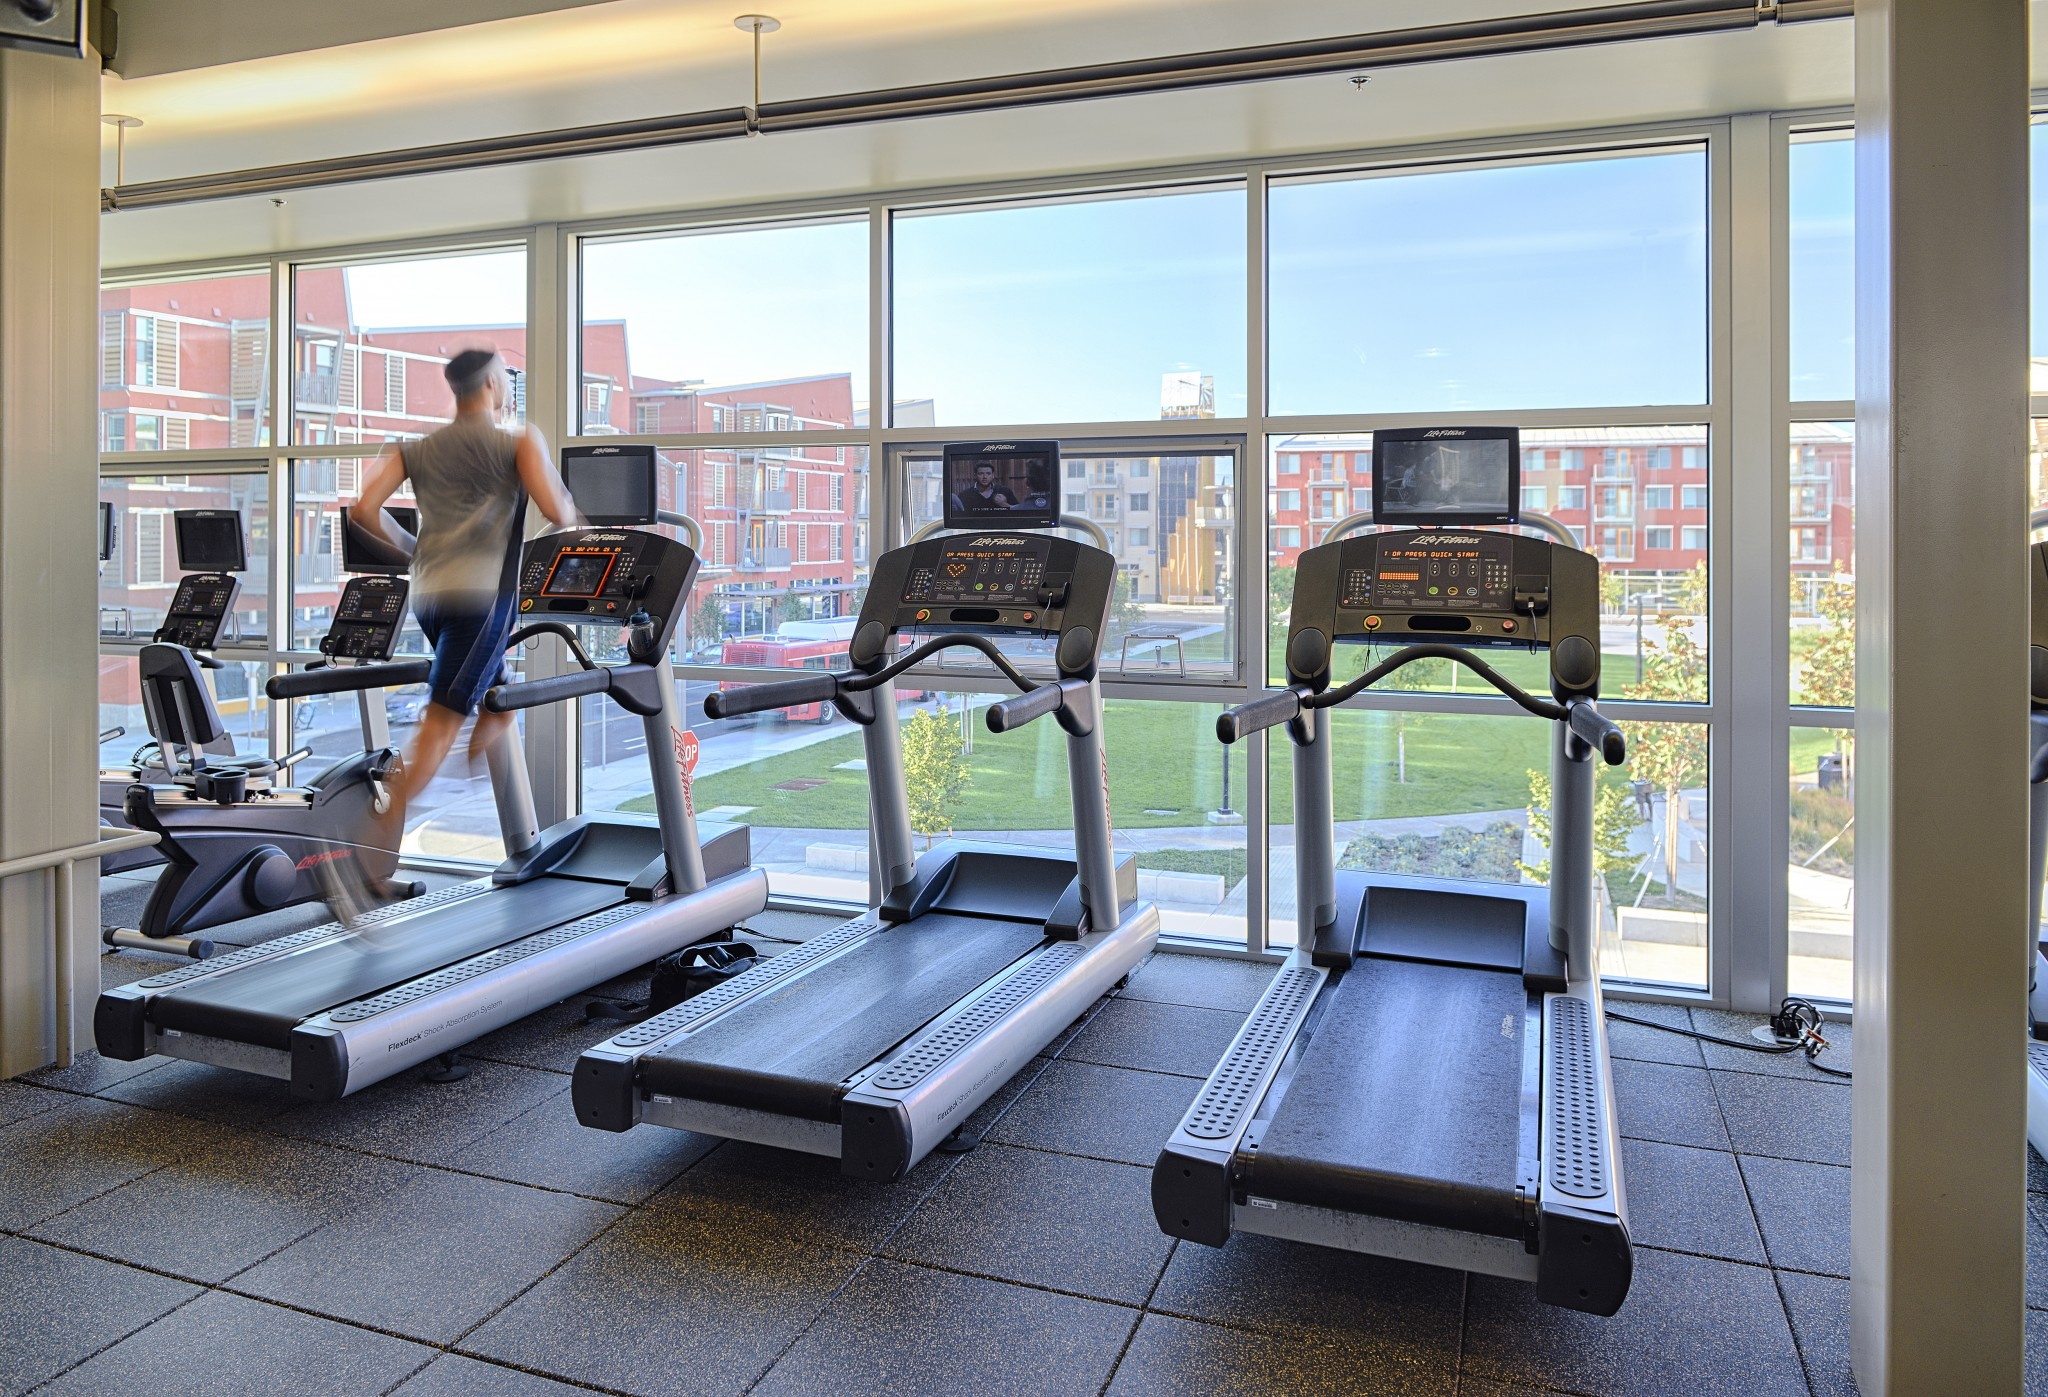 Treadmills in front of large windows with views of other apartment buildings across the way.